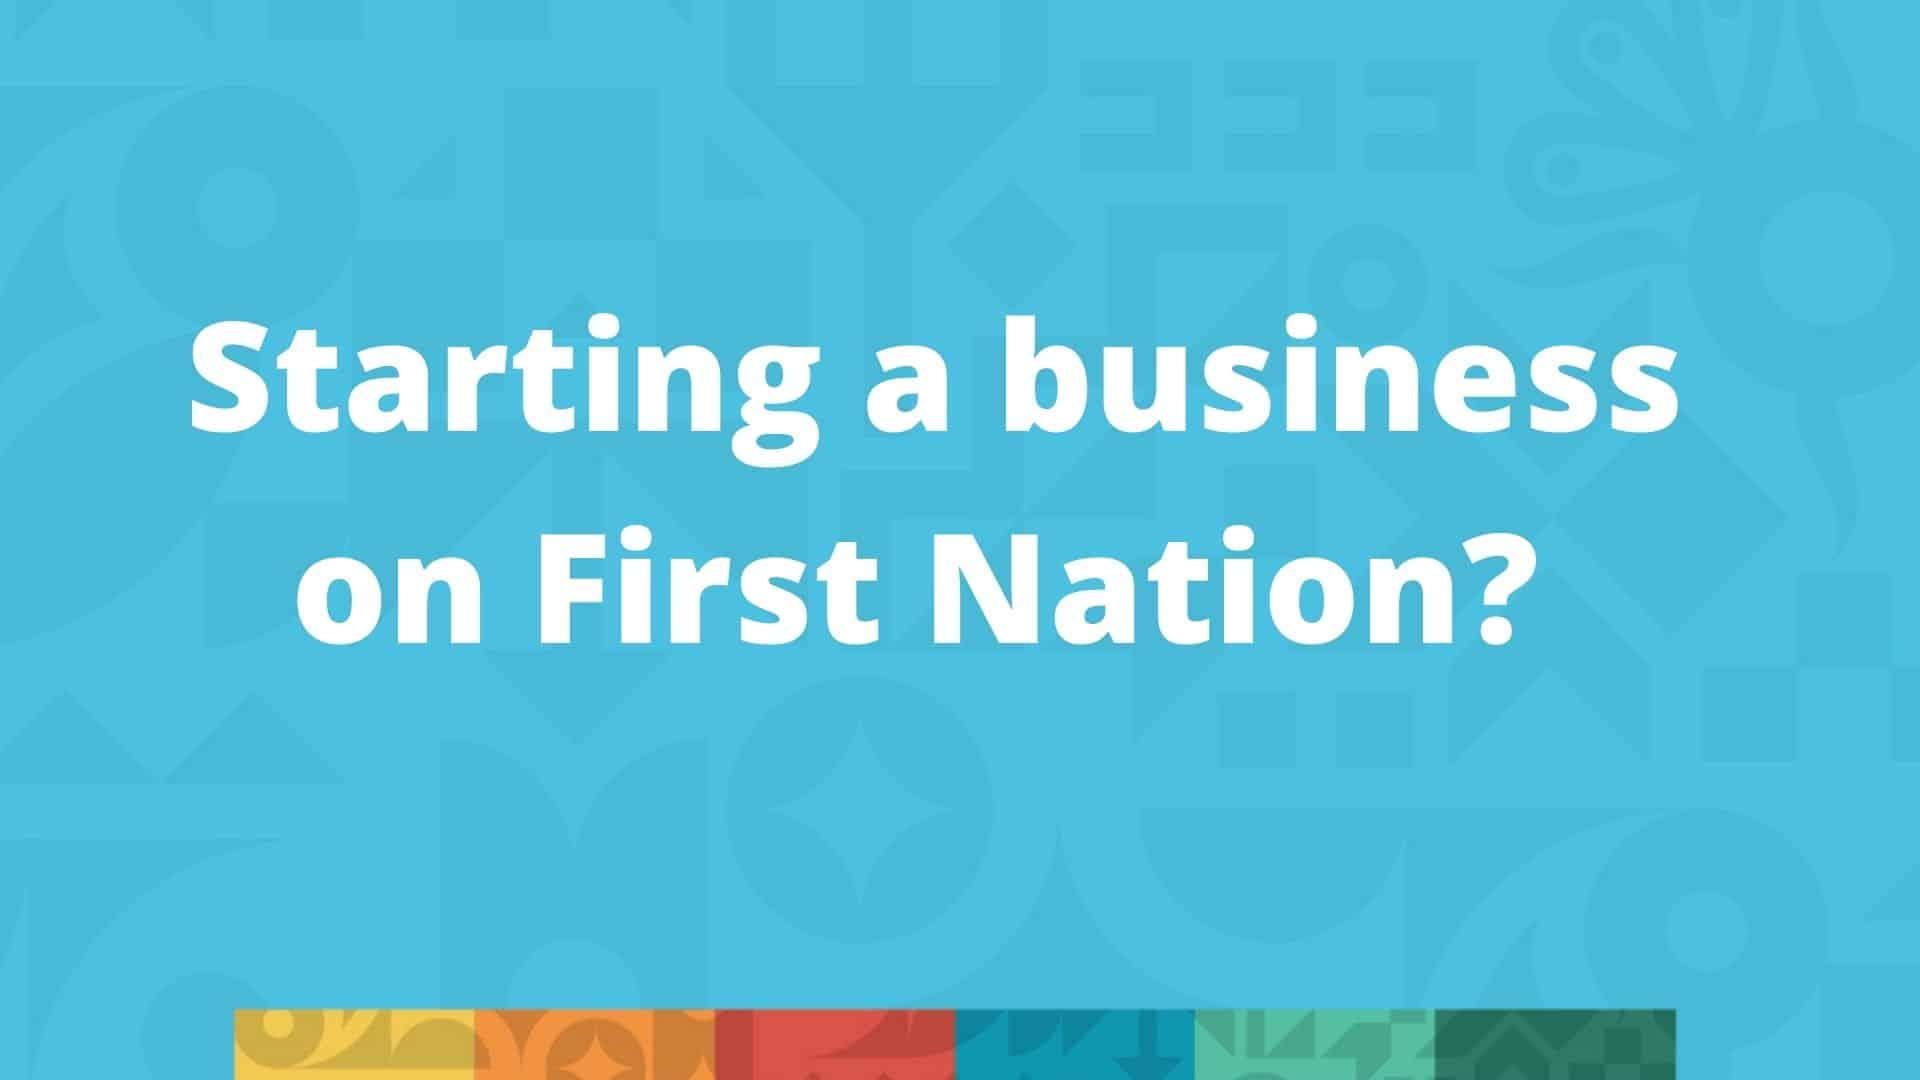 Starting a business on First Nation? Here are the Acts you should know about